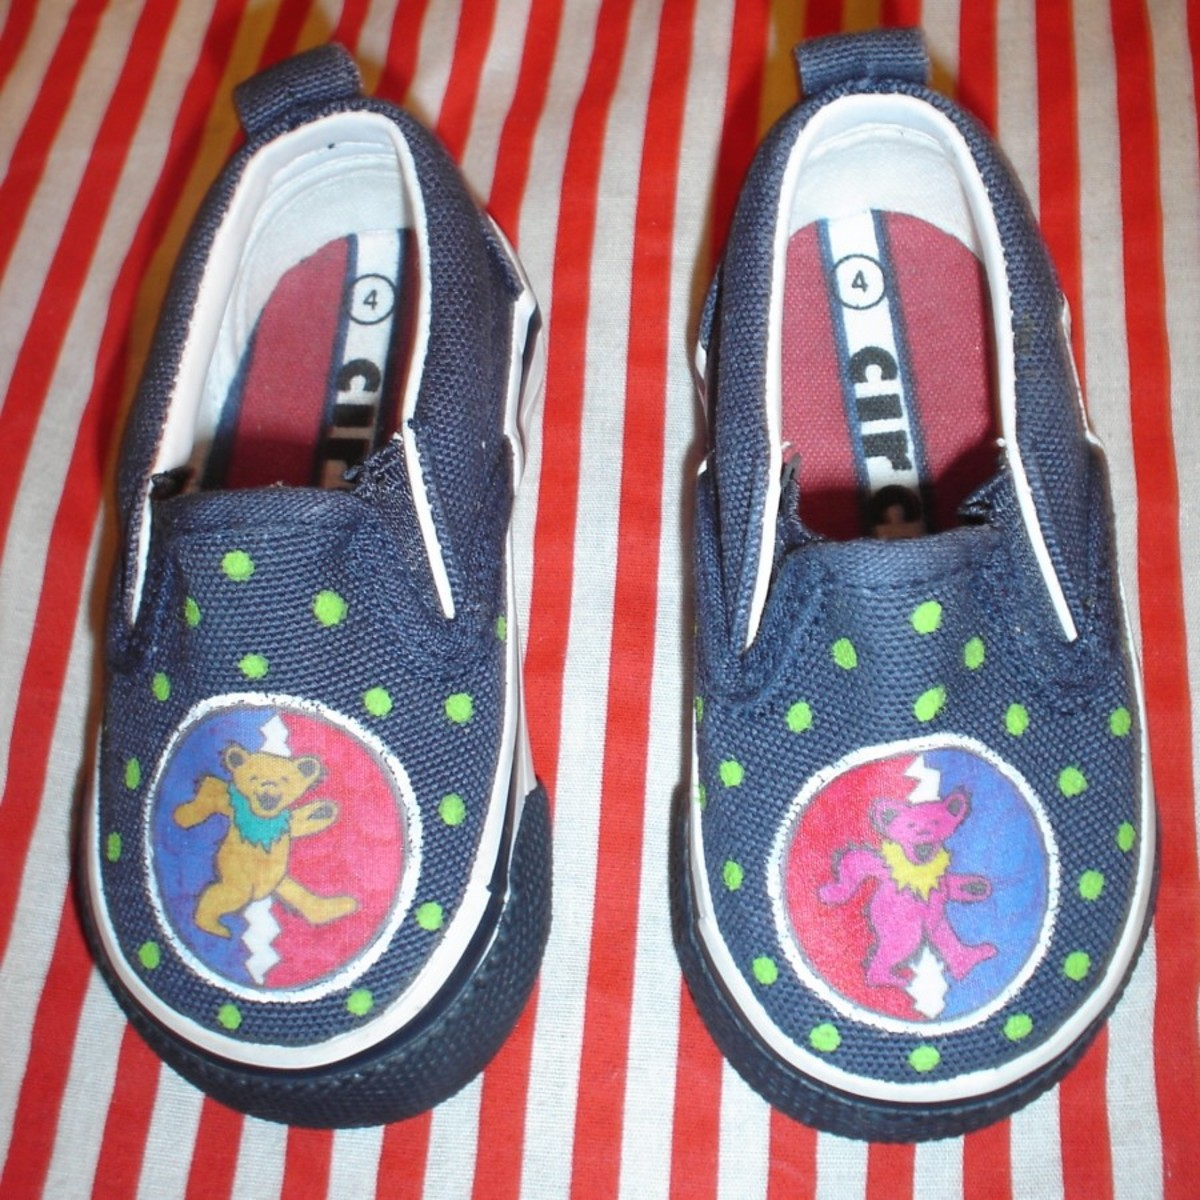 How to Easily Decorate your Chuck Taylors or Canvas Shoes